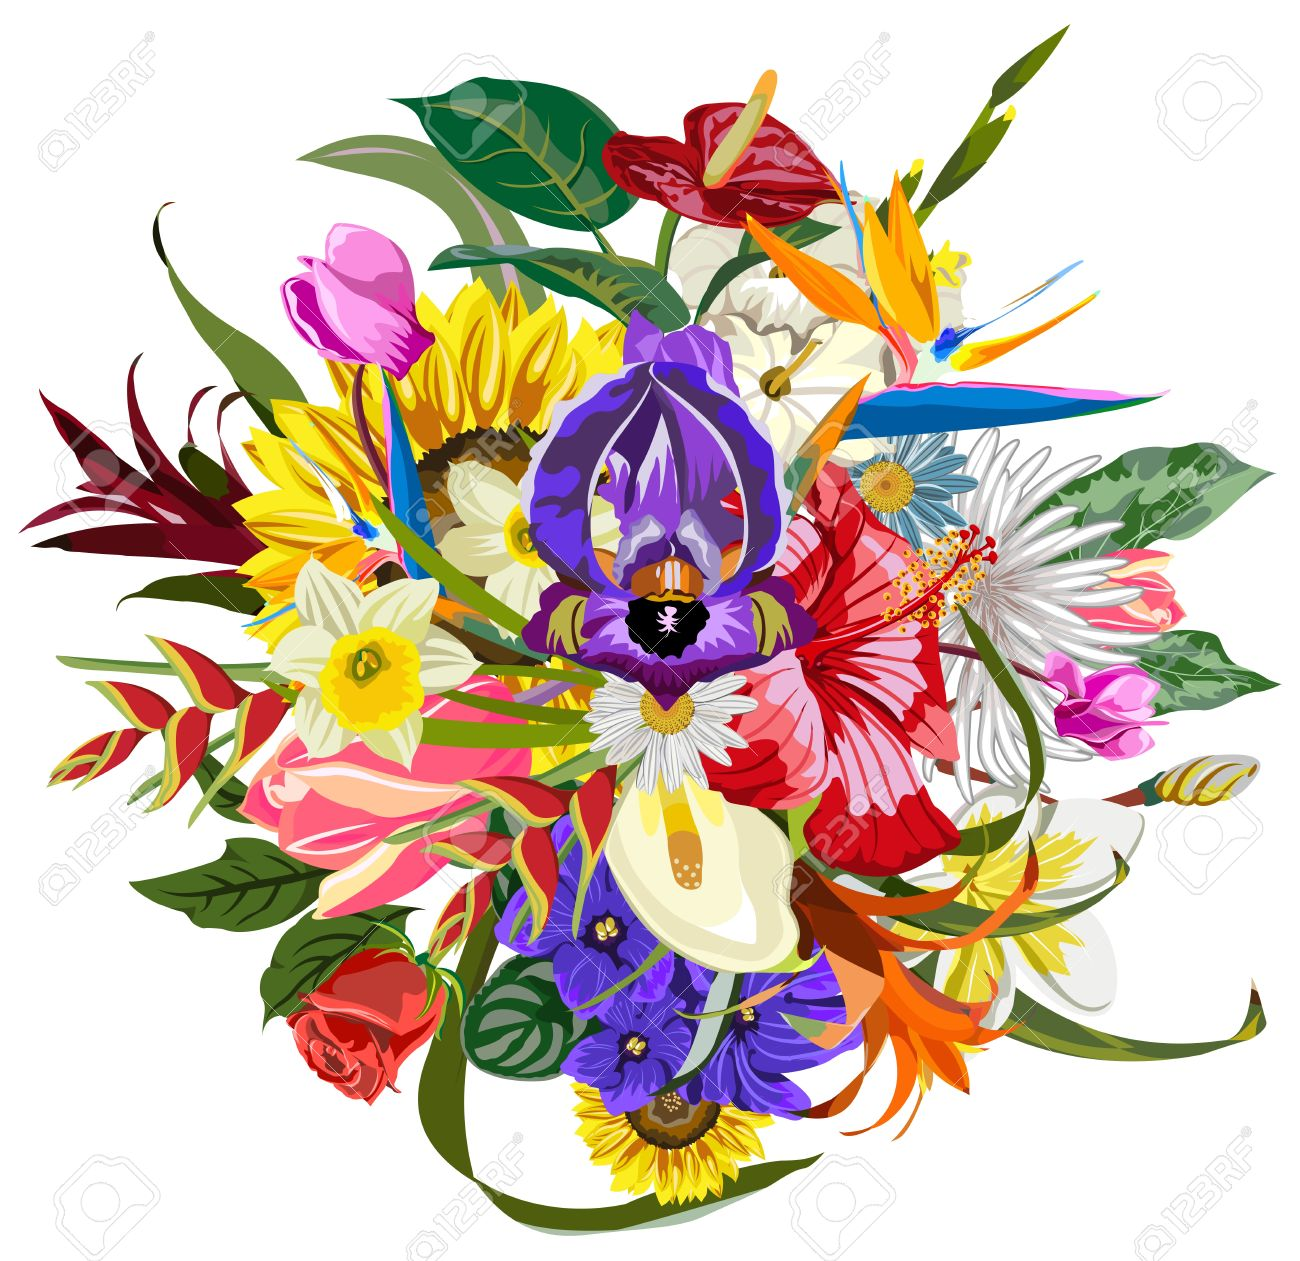 Bouquet of many beautiful and colorful flowers - 17885536